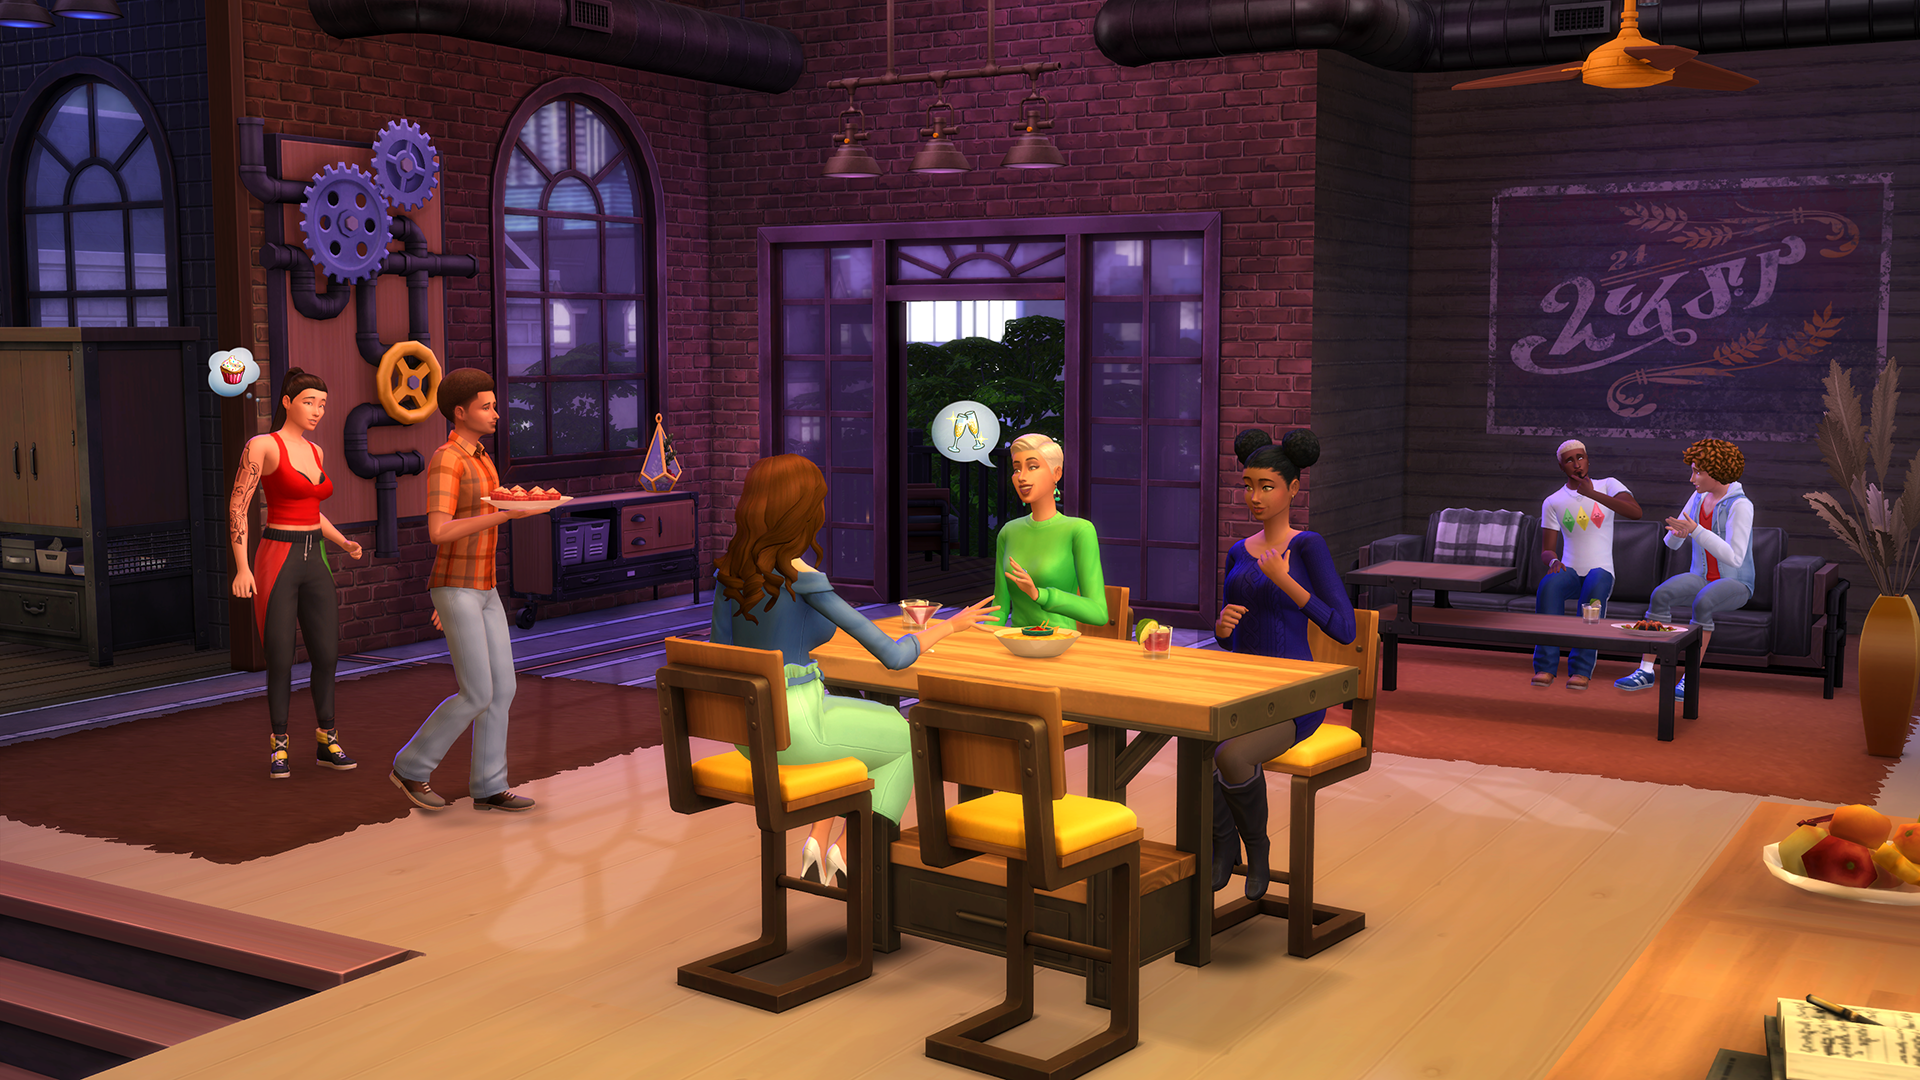 The Sims 4 Industrial Loft Kit - Dining Area with Sims Having a Party